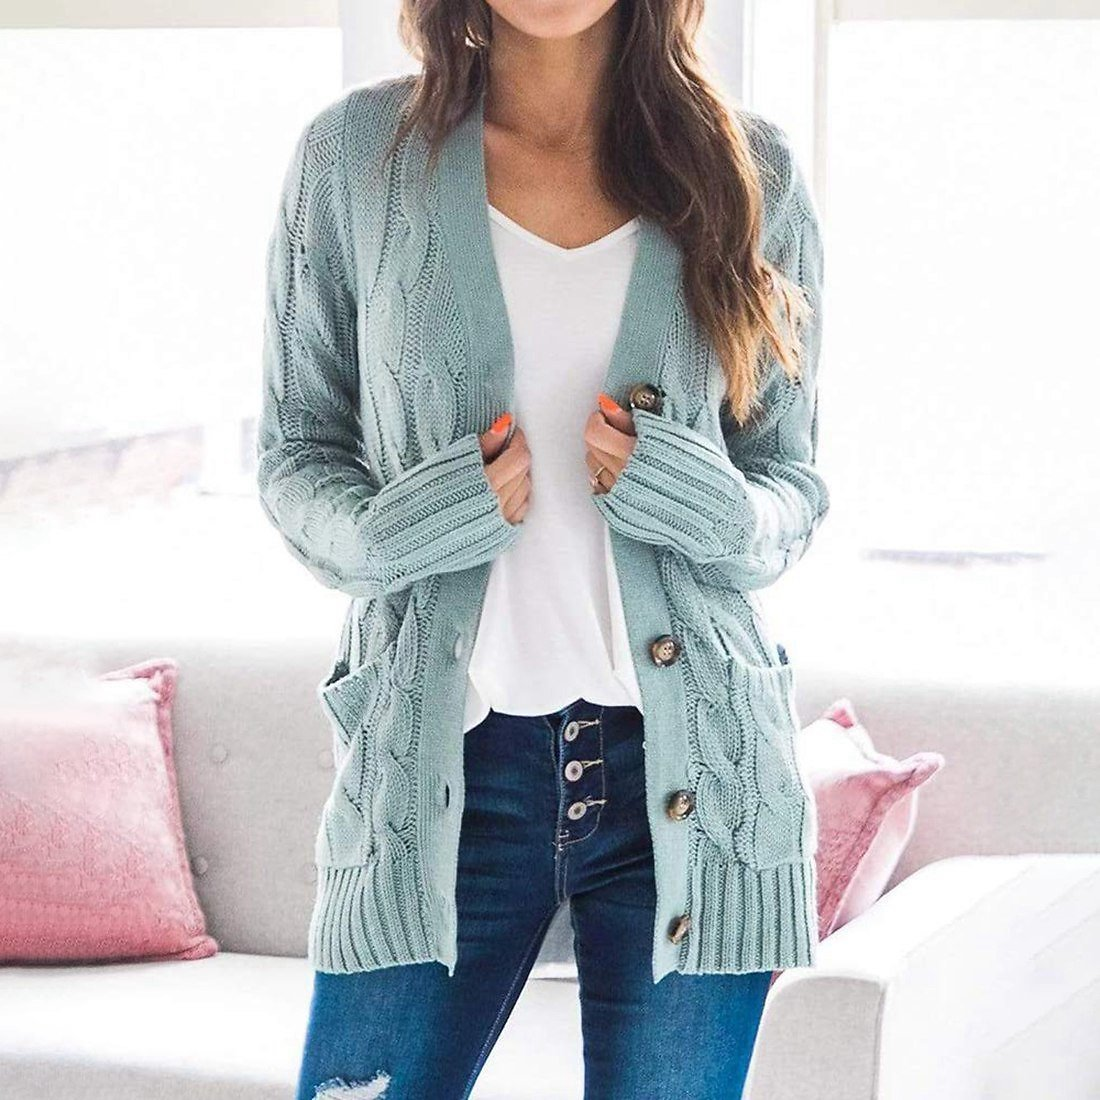 US $10.69 33% OFF|Women Sweater 2020 New Autumn/ Winter Fashion Women Cardigans Long Sleeve Button Sweater Women Casual Solid Single Knit Cardigan|Cardigans| - AliExpress